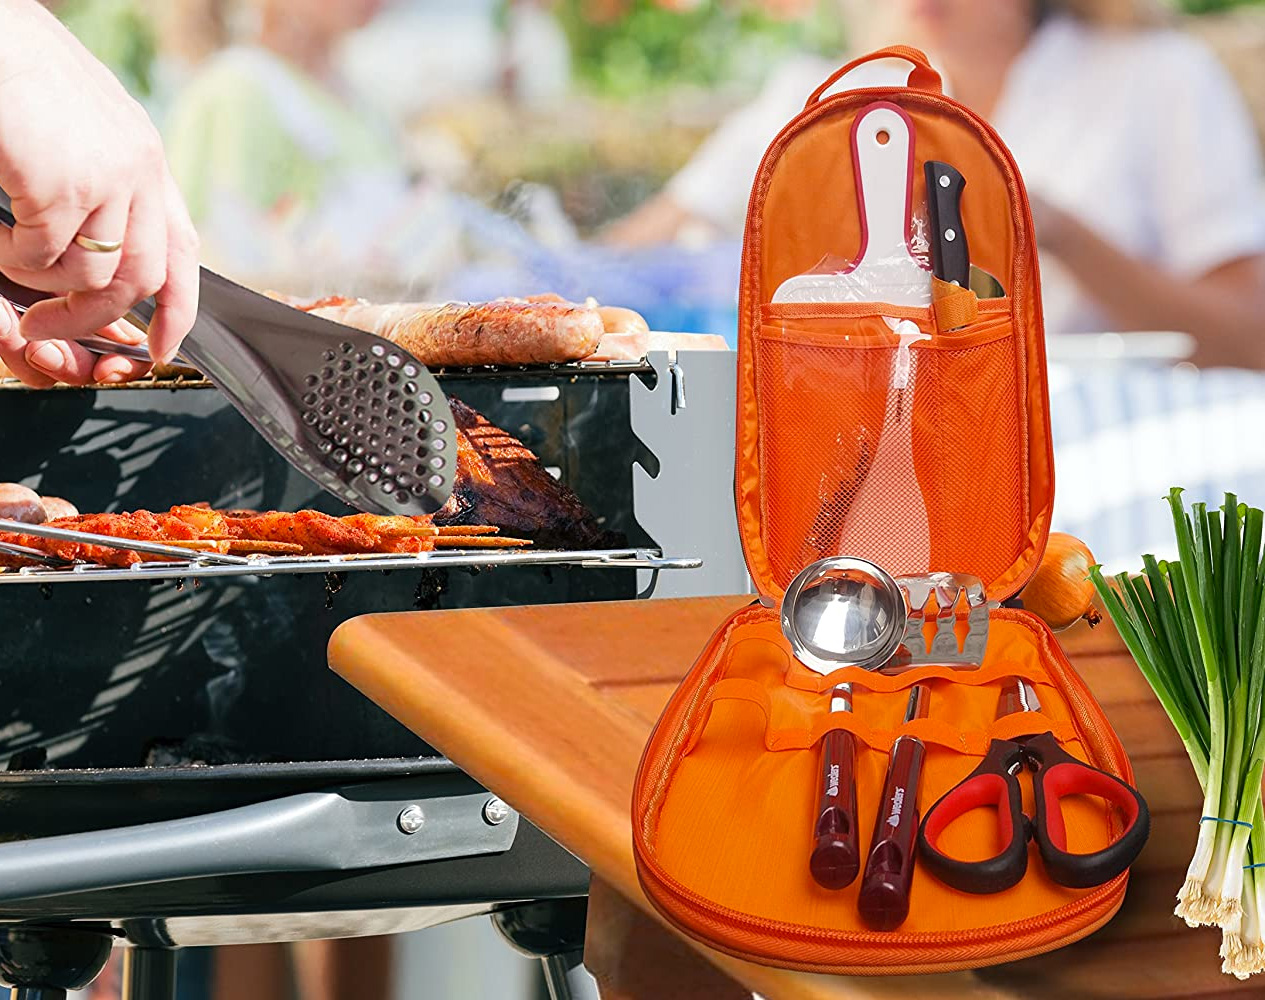 Level-Up Your Camp Kitchen Gear at werd.com